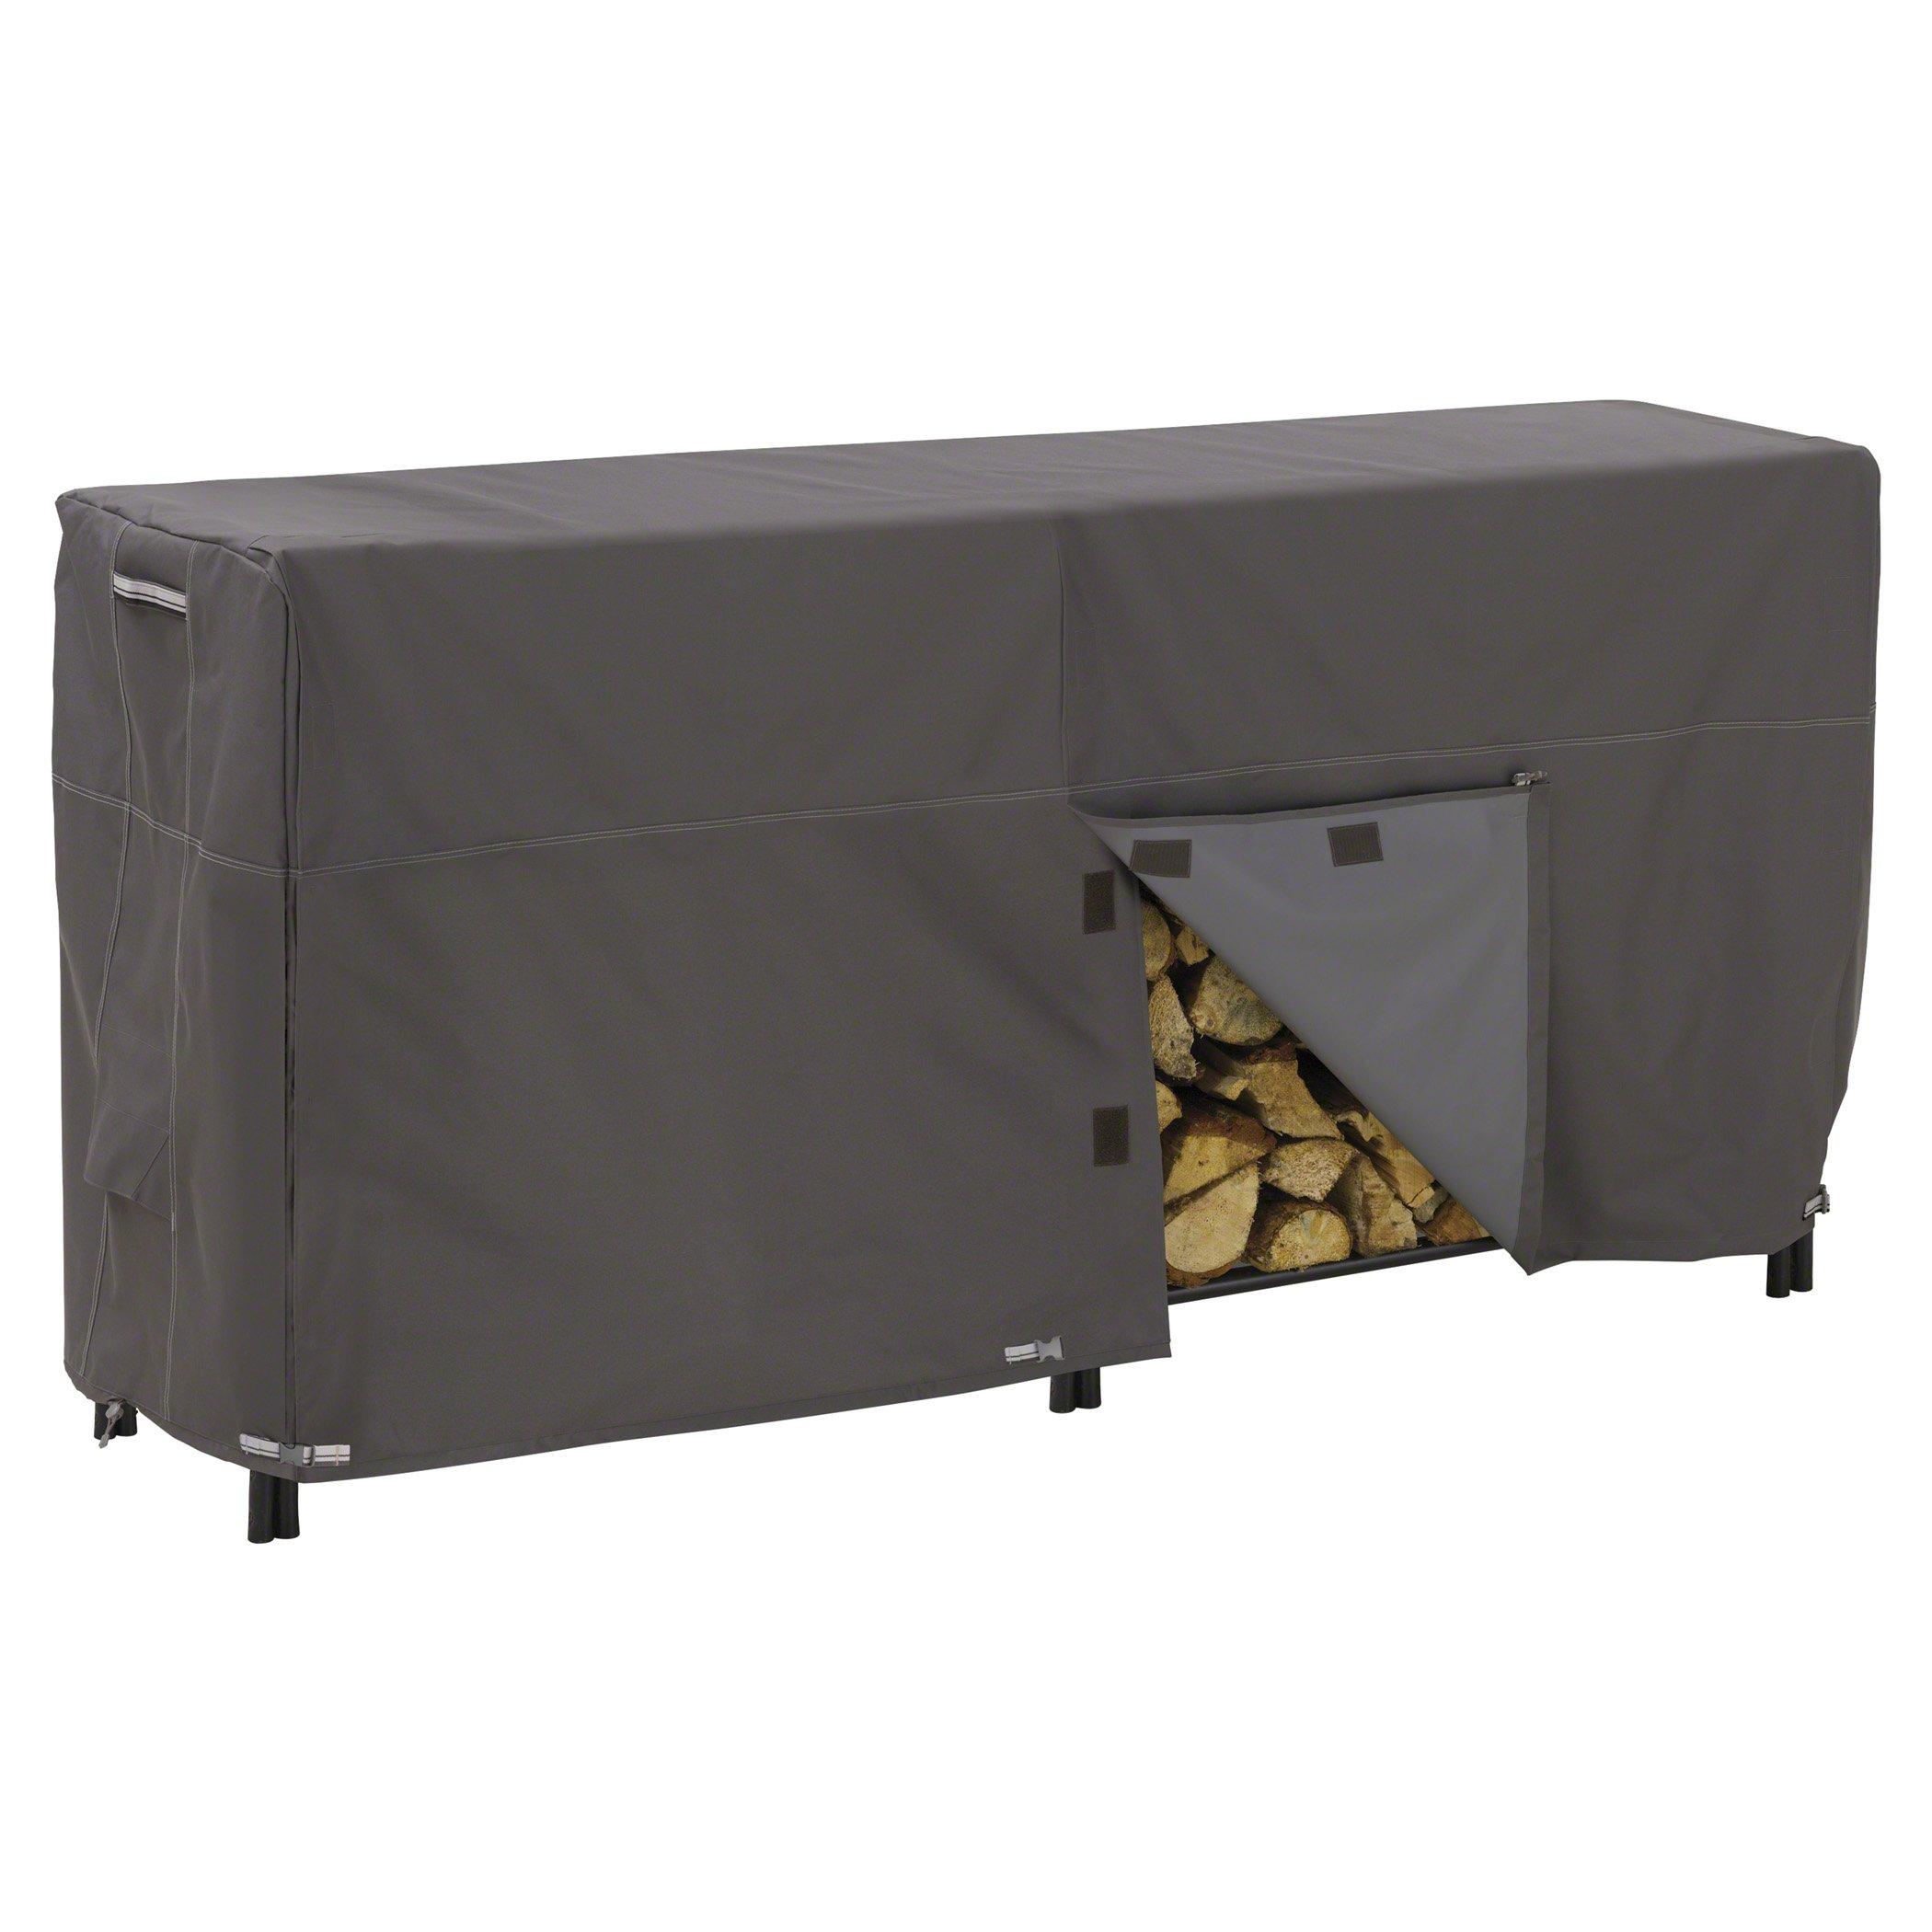 Classic Accessories Ravenna Log Rack Cover - Premium Outdoor Cover with Durable and Water Resistant Fabric, 8-Feet (55-172-045101-EC)